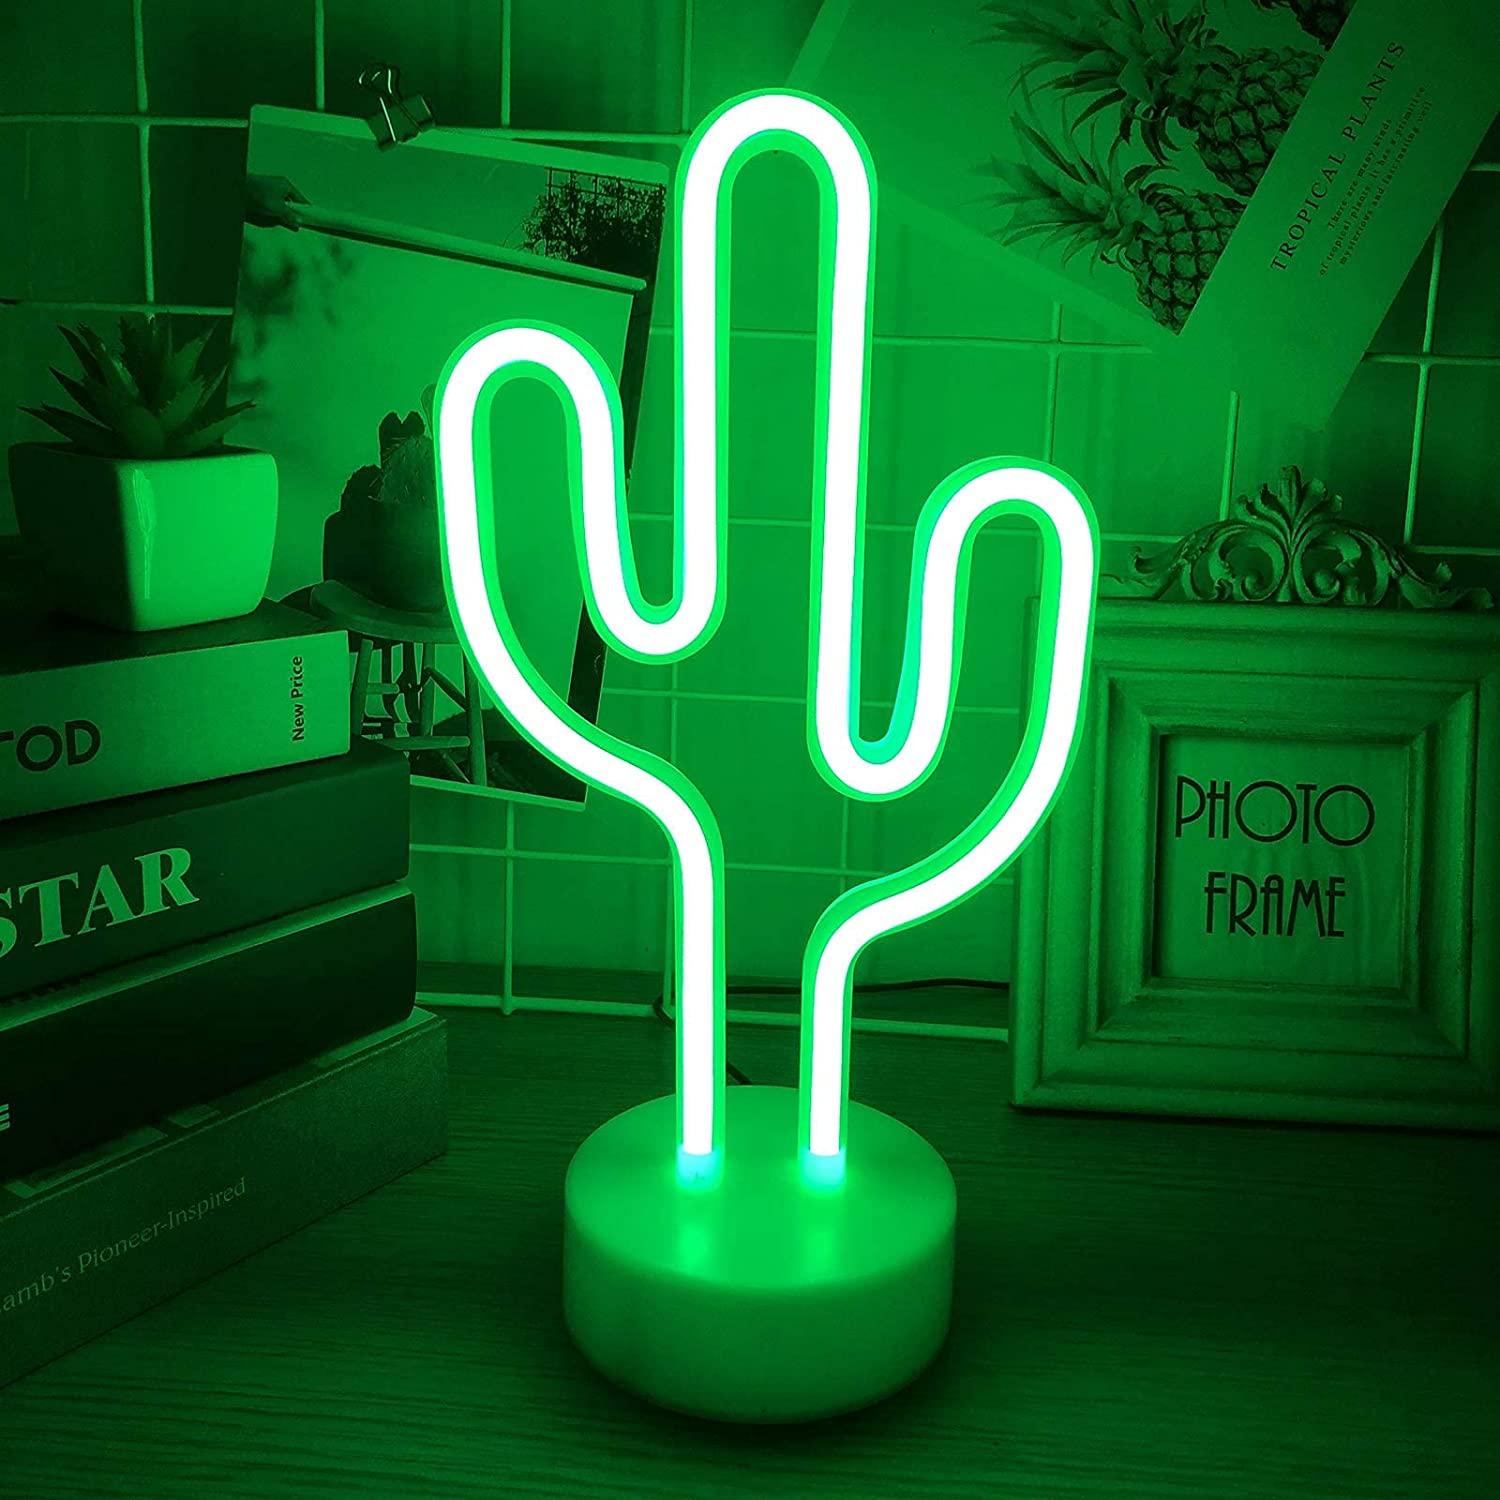 Momkids Cactus Neon Sign Green Neon Lights LED Signs Cactus Decor with Holder Base LED Night Light Battery and USB Operated Led Lights for Home Kids Room Bedroom Birthday Party Decorative Lights